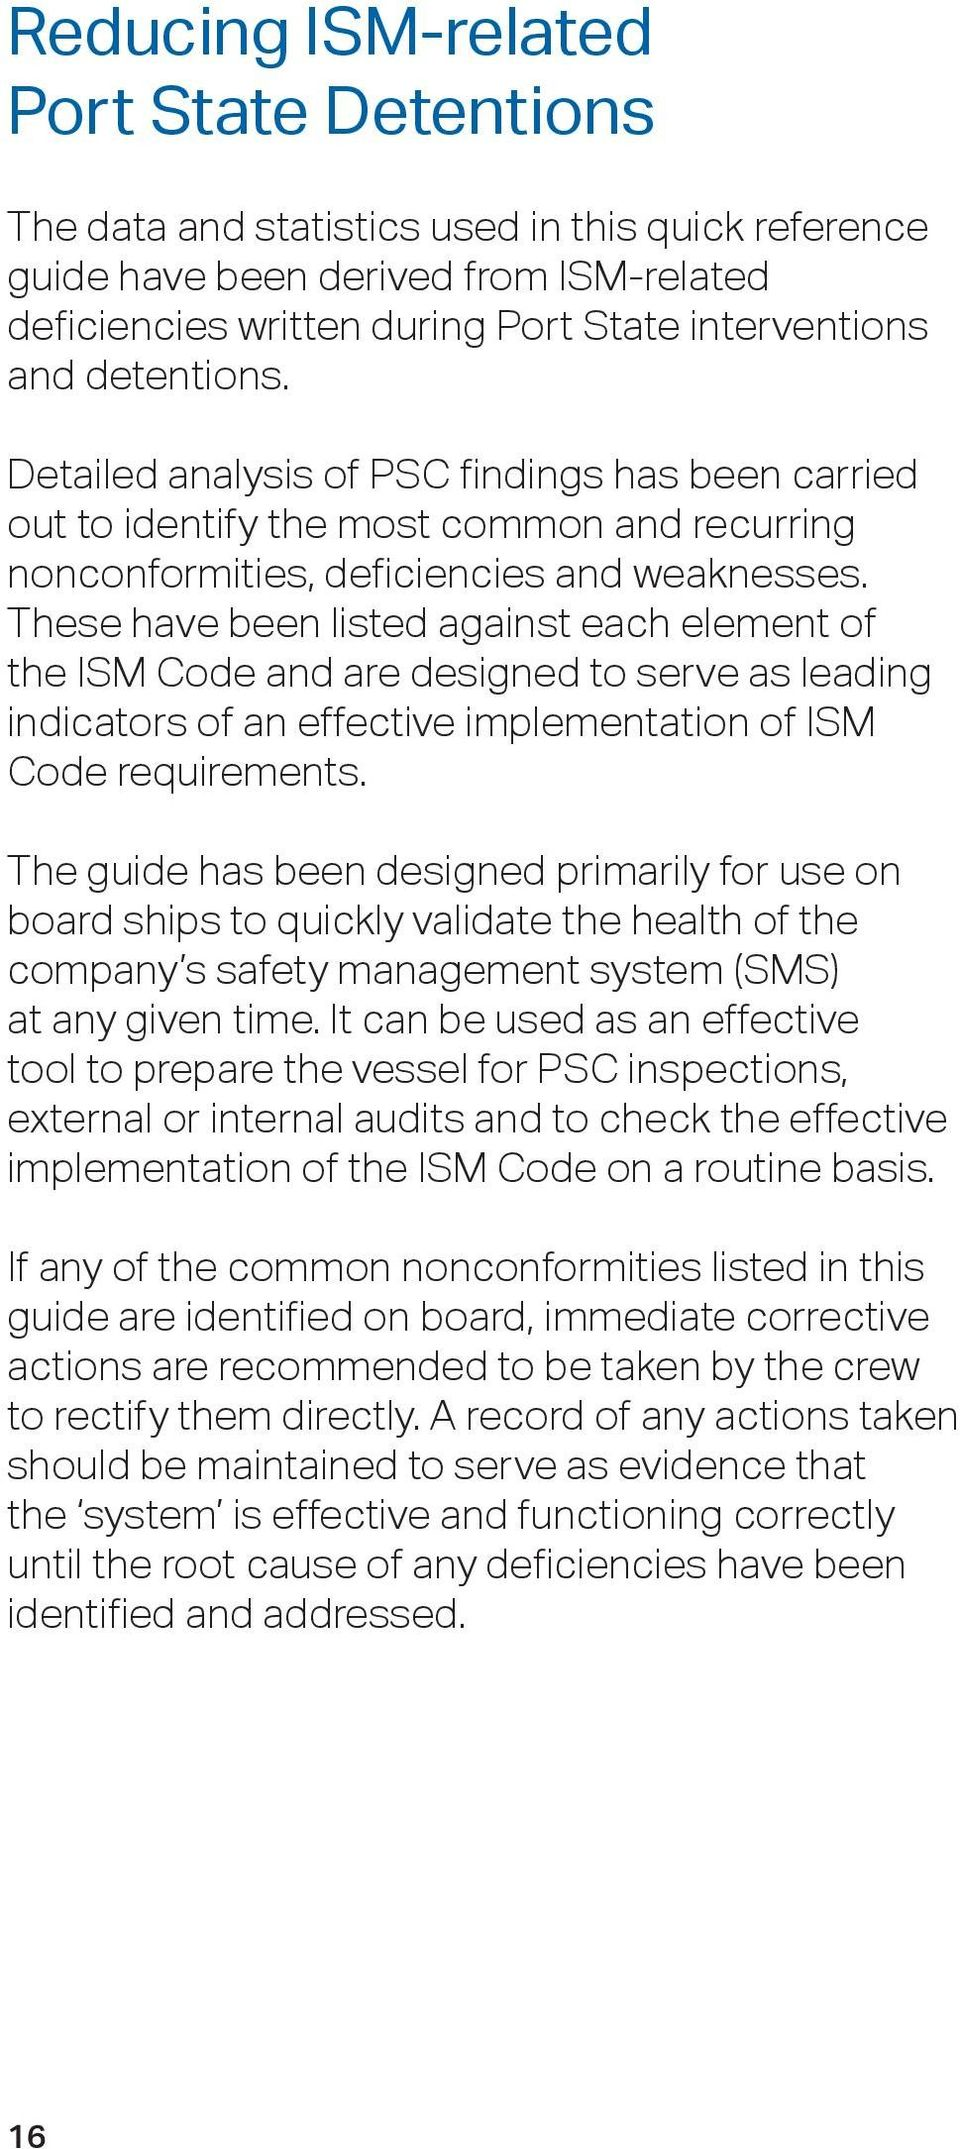 These have been listed against each element of the ISM Code and are designed to serve as leading indicators of an effective implementation of ISM Code requirements.